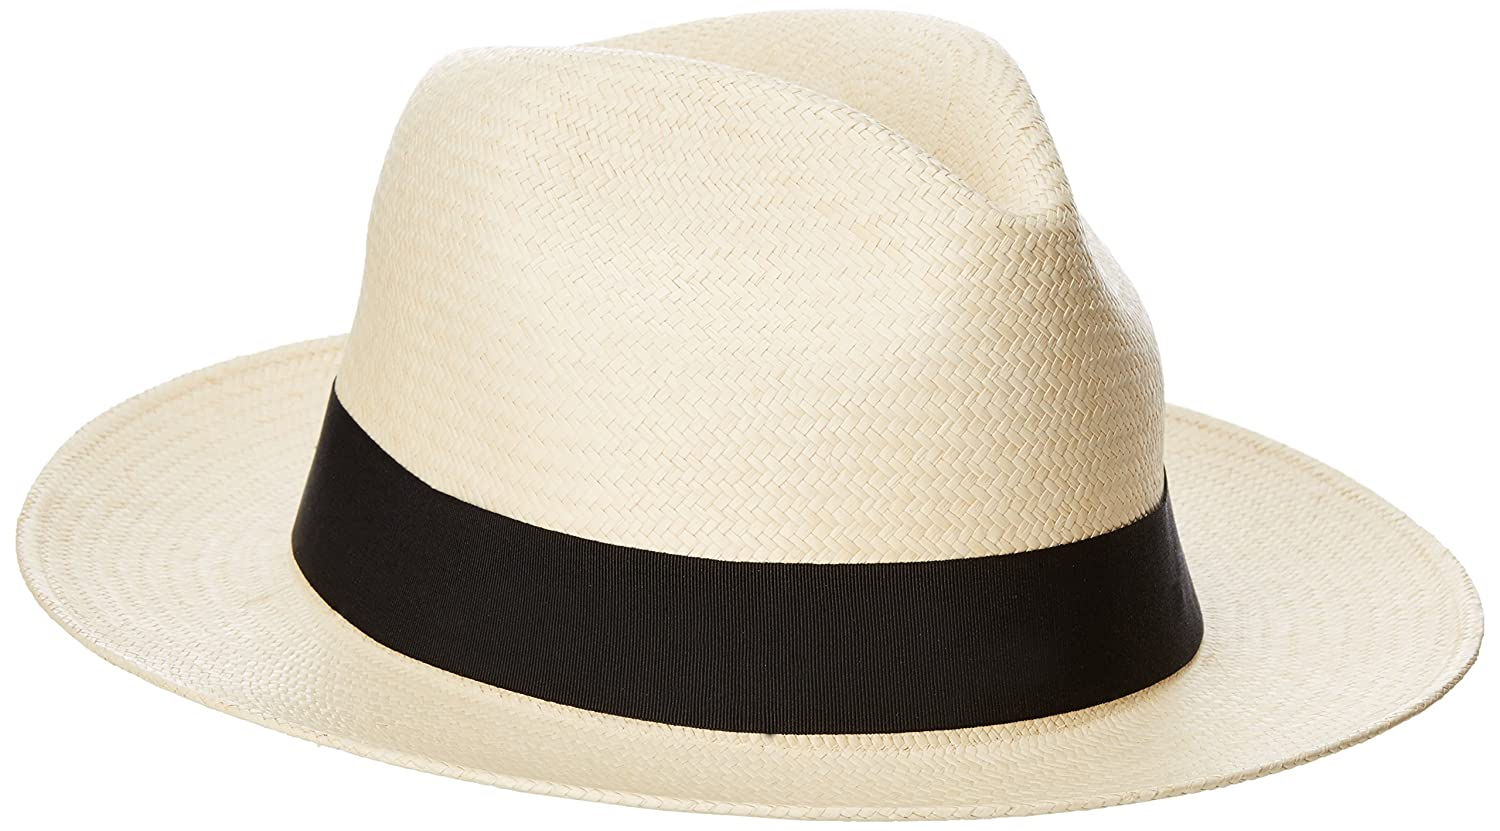 Henschel Mens Genuine Panama Straw 2 3/8 Brim, Hand Woven in Ecuador Natural X-Large Henschel Headwear Child Code 3152-73